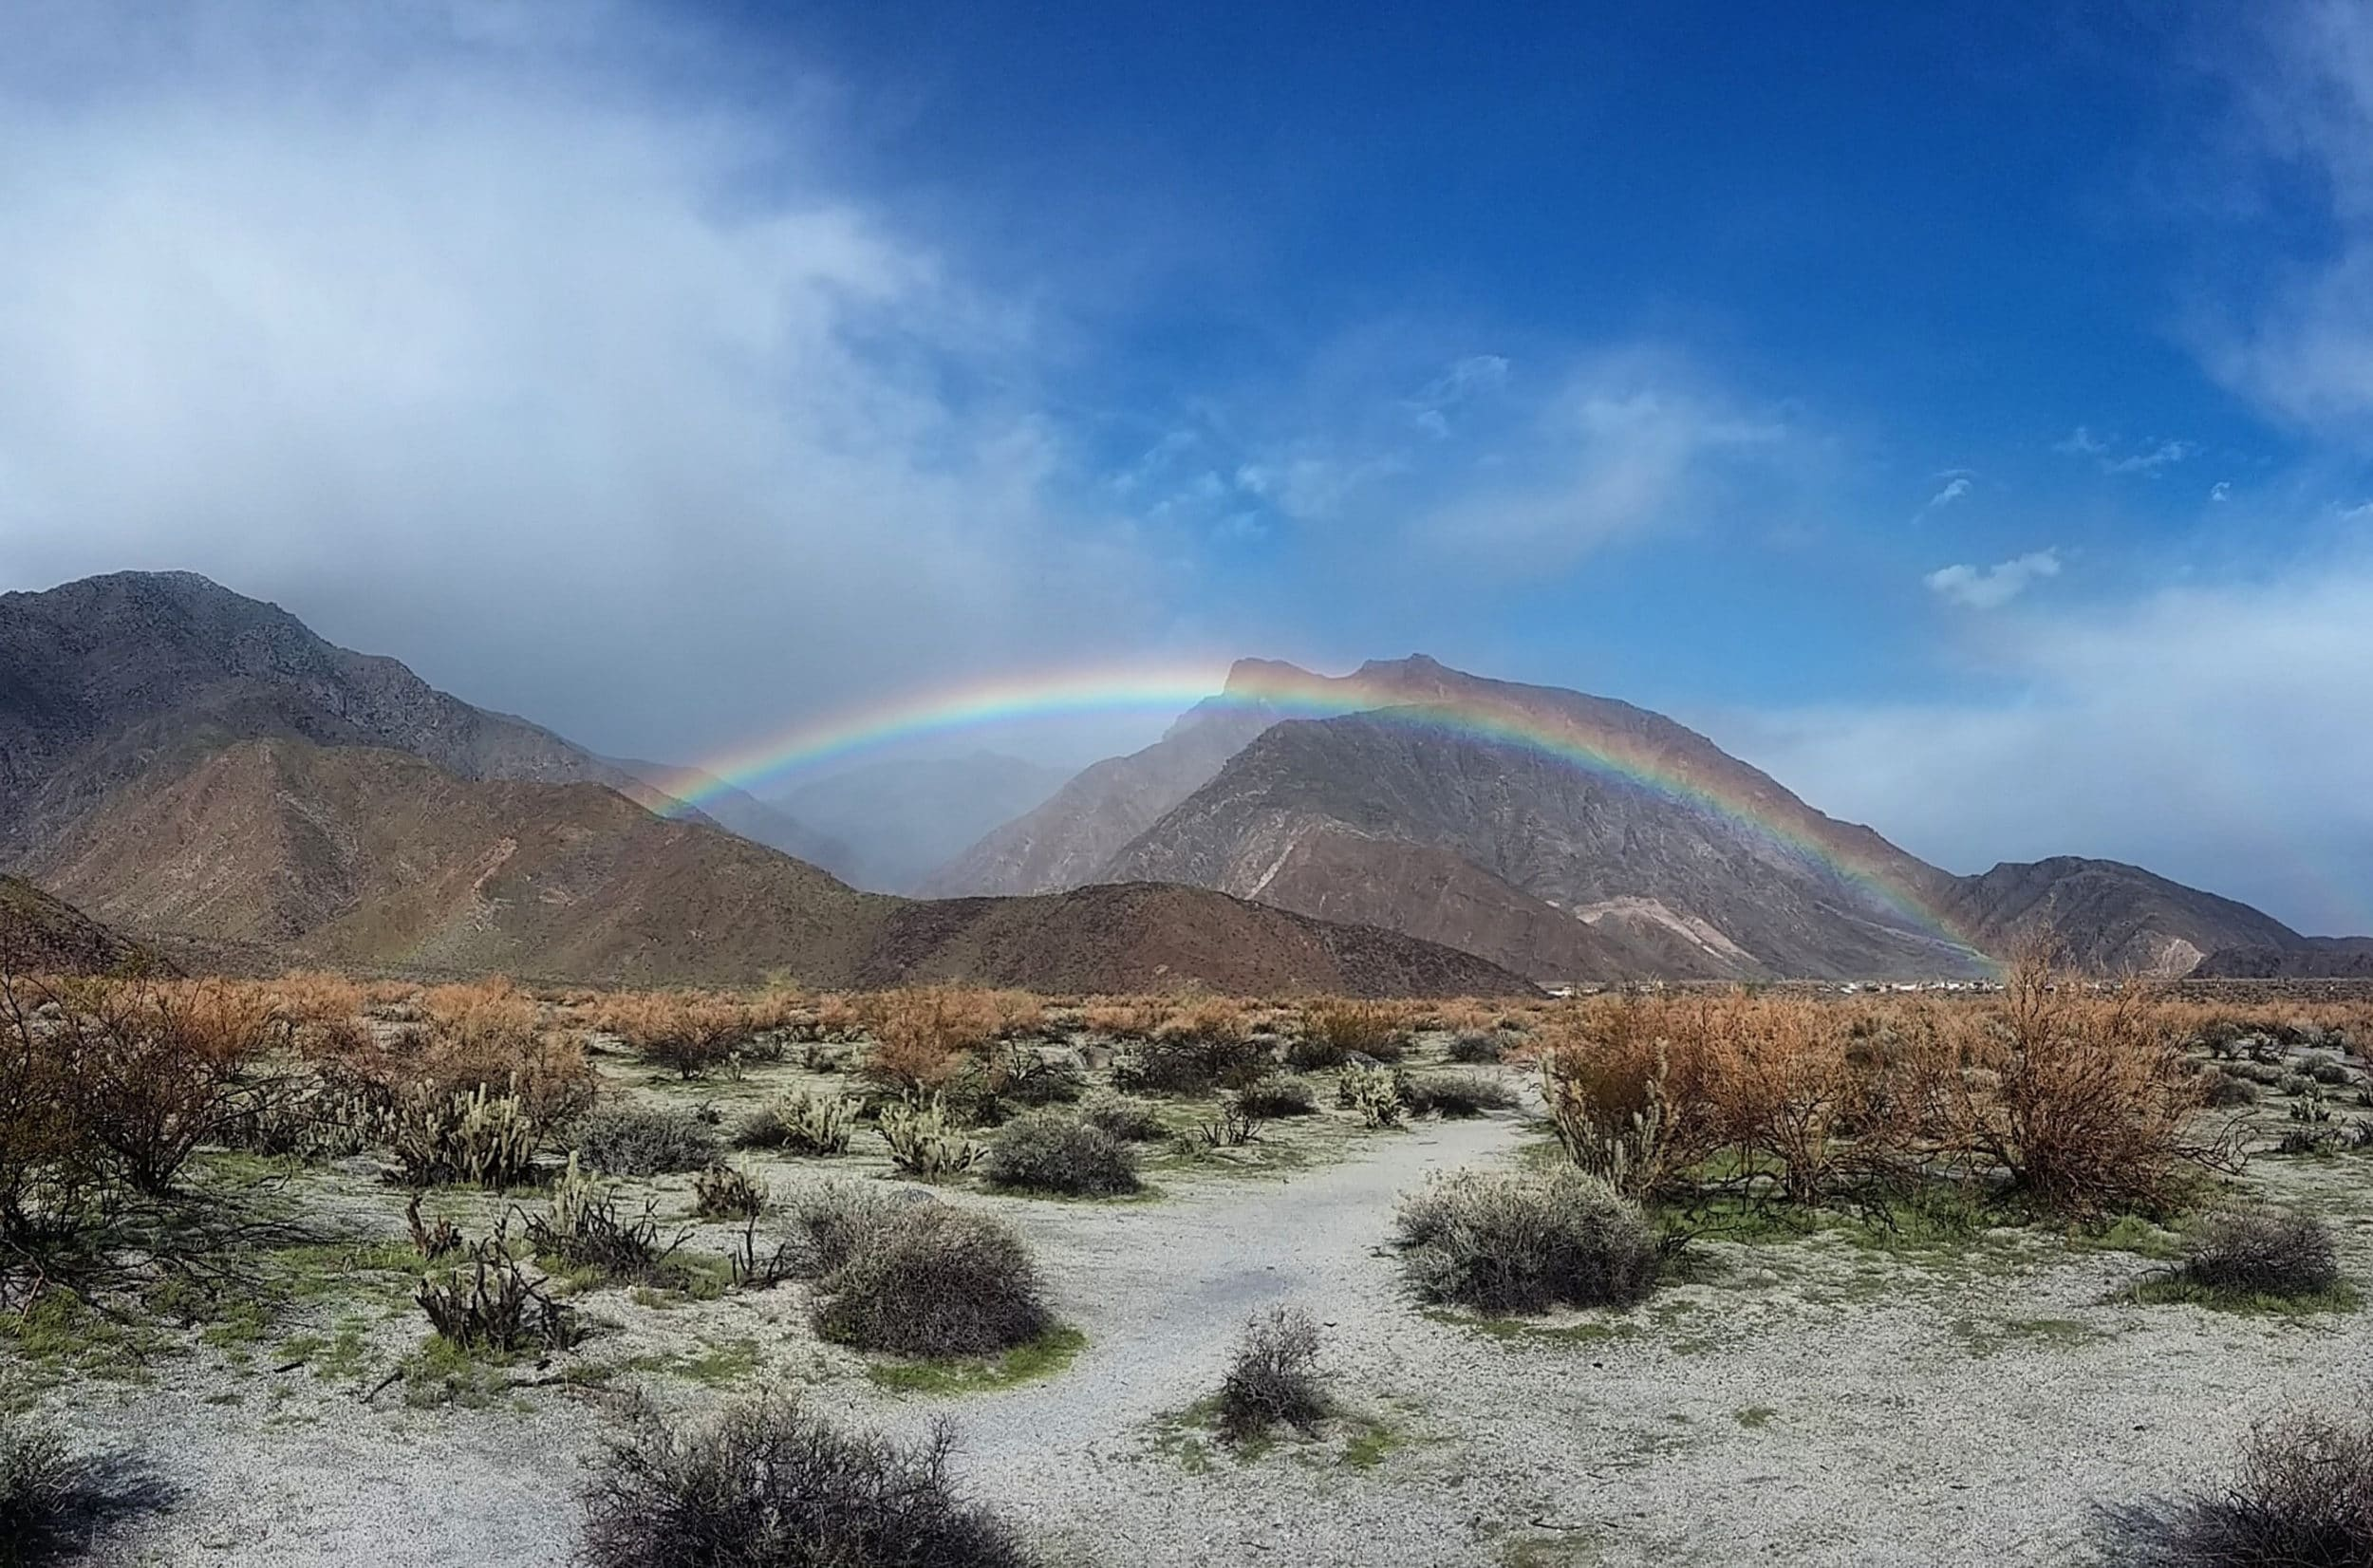 A rainbow over Indian Head Mountain in Anza-Borrego Desert State Park